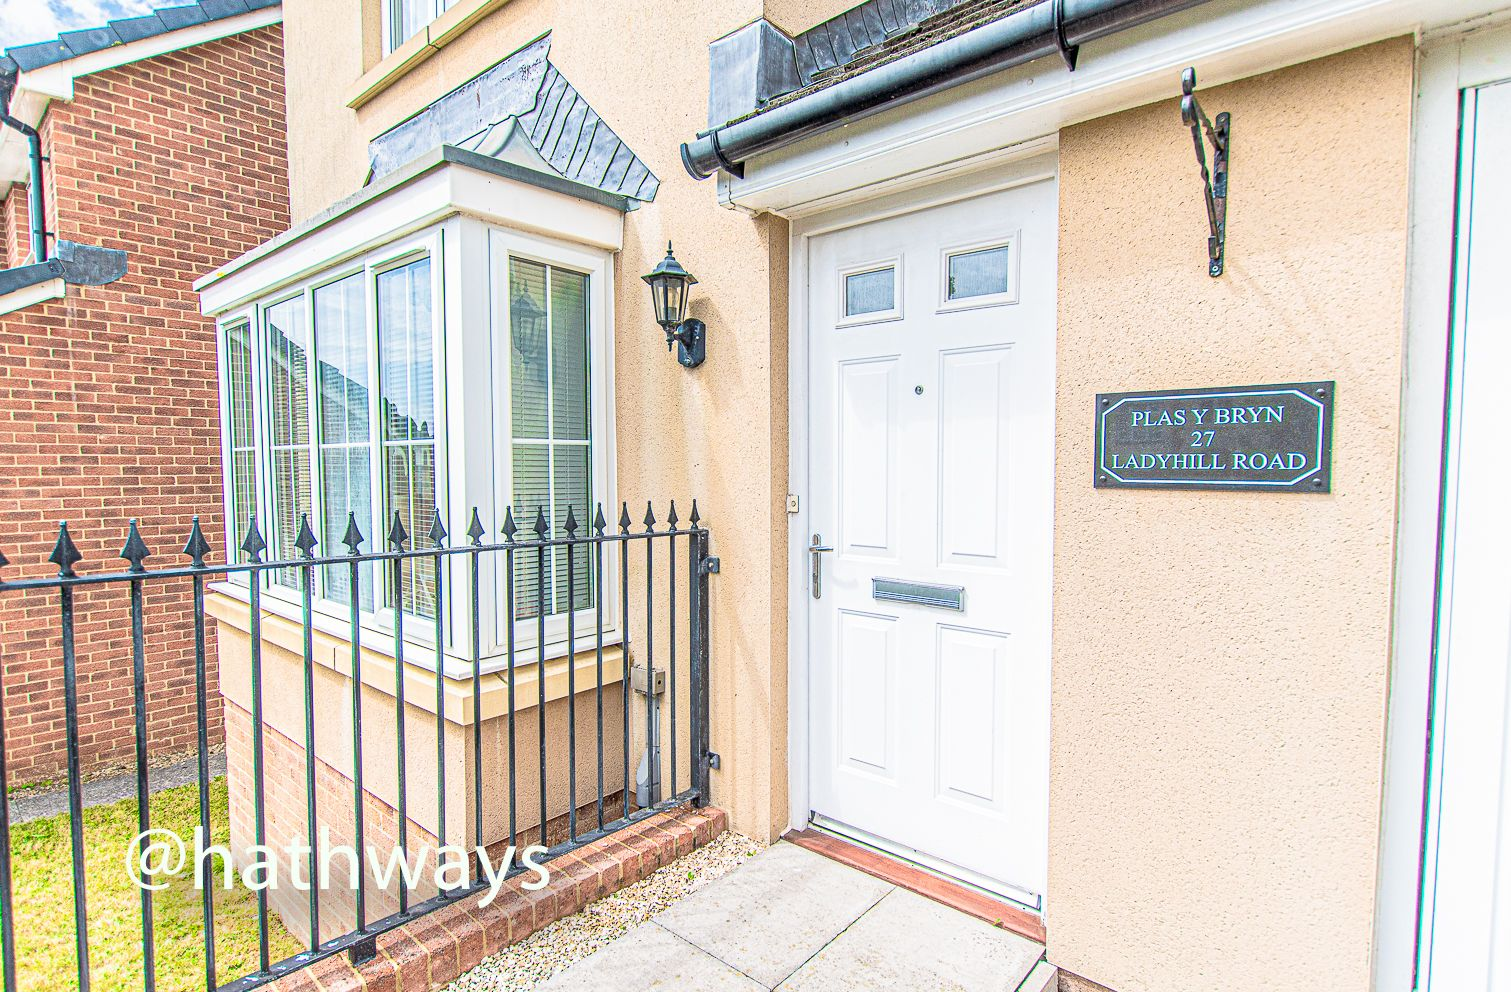 4 bed house for sale in Ladyhill Road 46